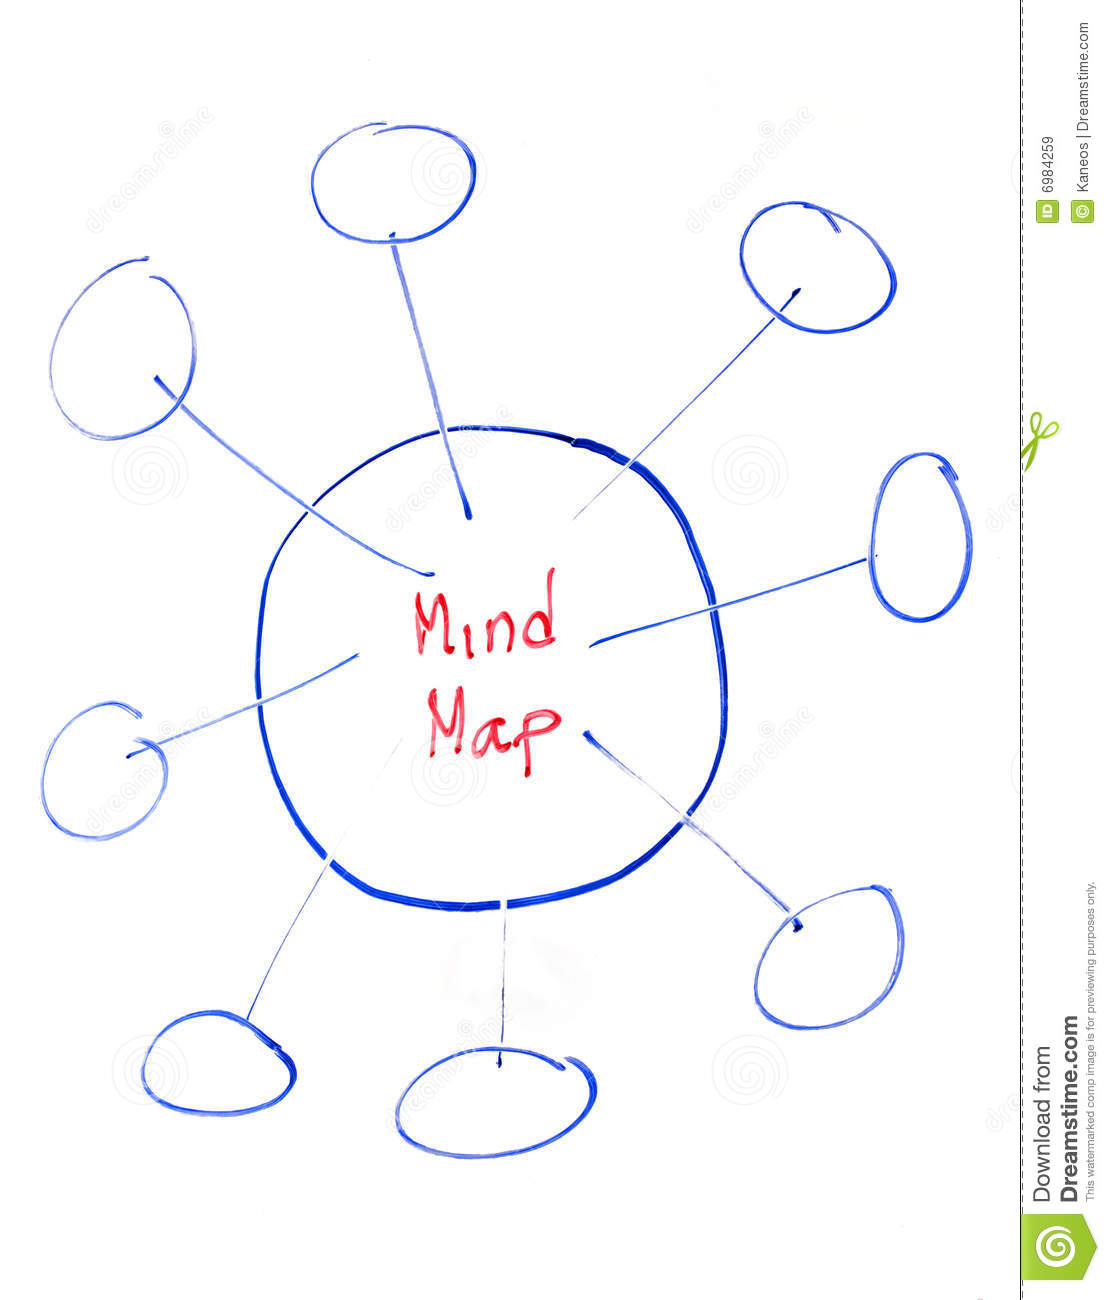 Mind Map Royalty Free Stock Images  Image: 6984259